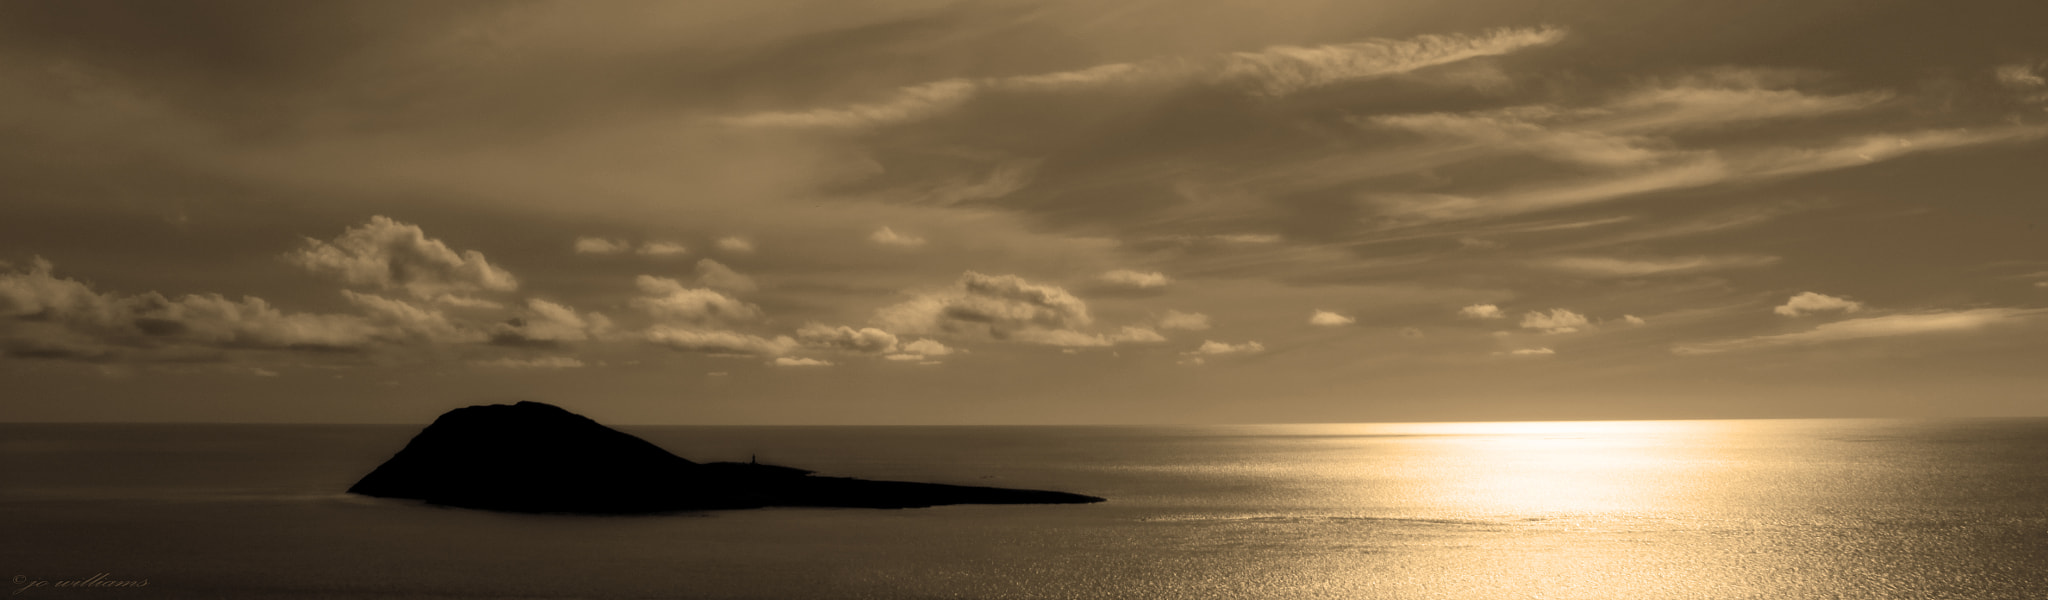 Photograph The Black Island by jo williams on 500px